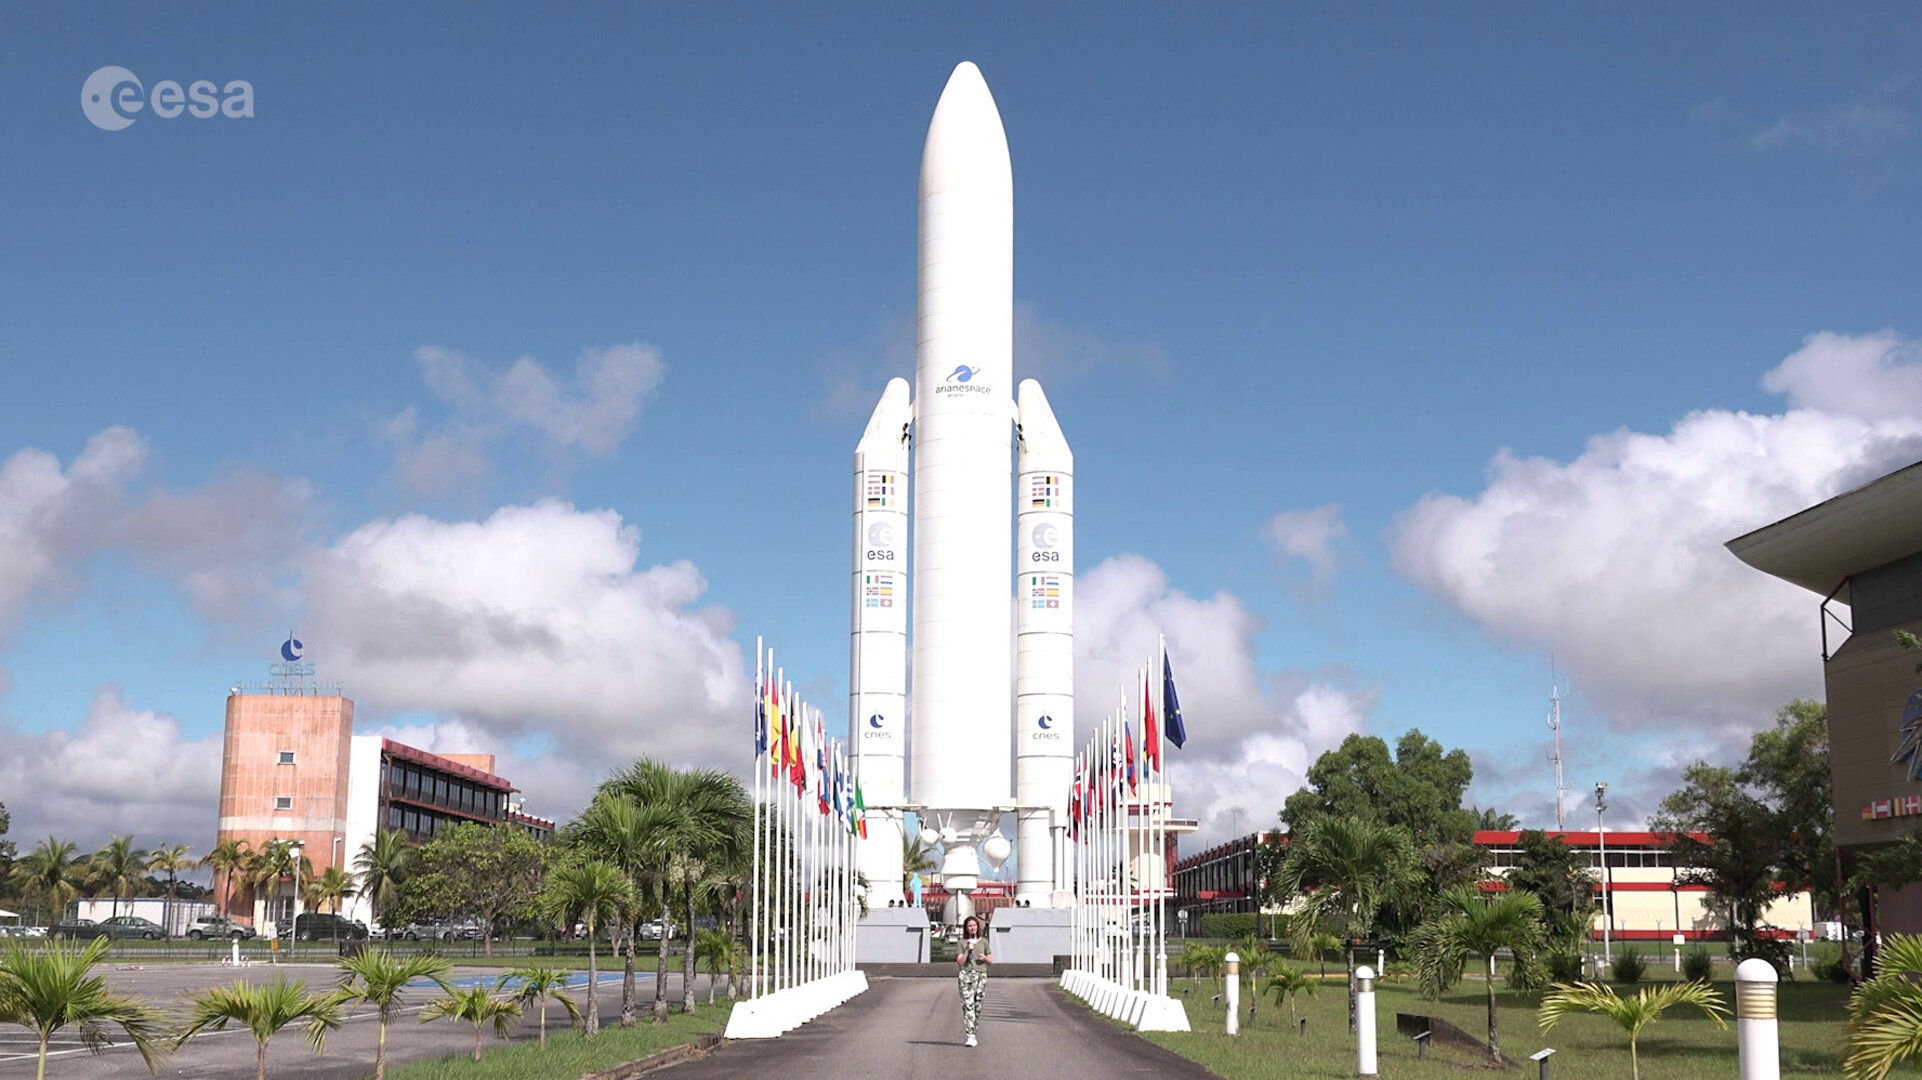 https://www.esa.int/var/esa/storage/images/esa_multimedia/videos/2019/12/europe_s_spaceport_in_french_guiana/21525105-3-eng-GB/Europe_s_Spaceport_in_French_Guiana_pillars.jpg